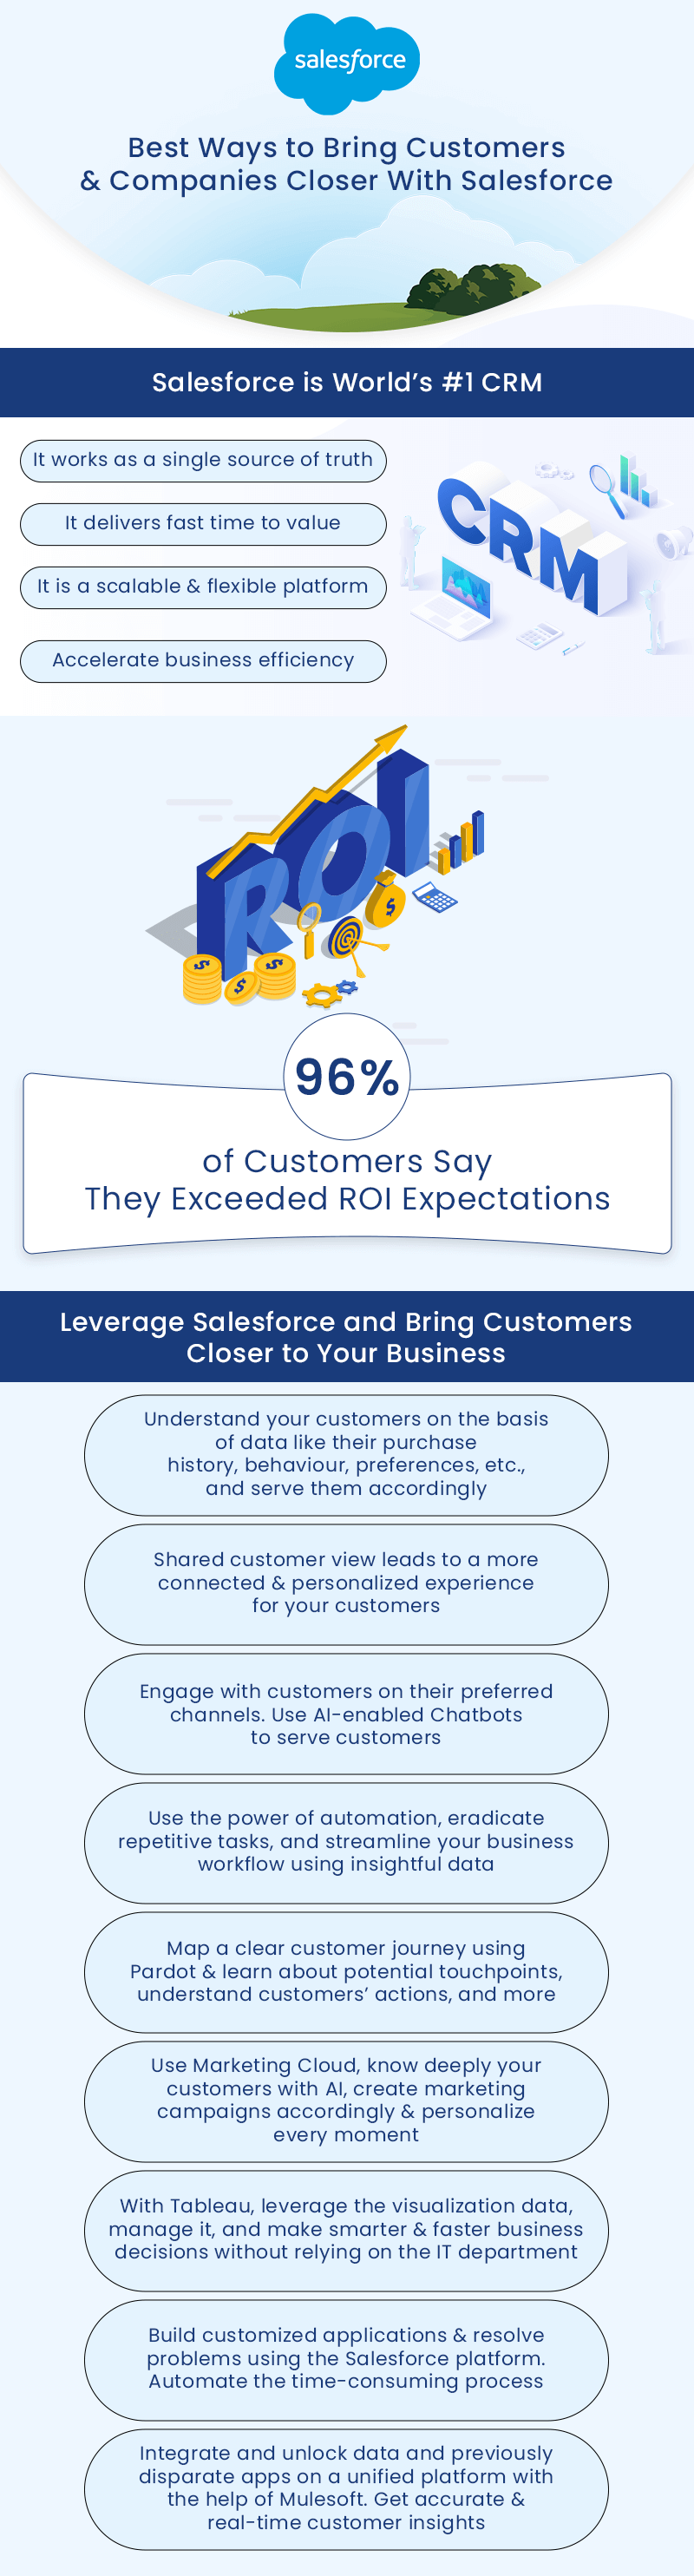 Best Ways to Bring Customers and Companies Closer With Salesforce